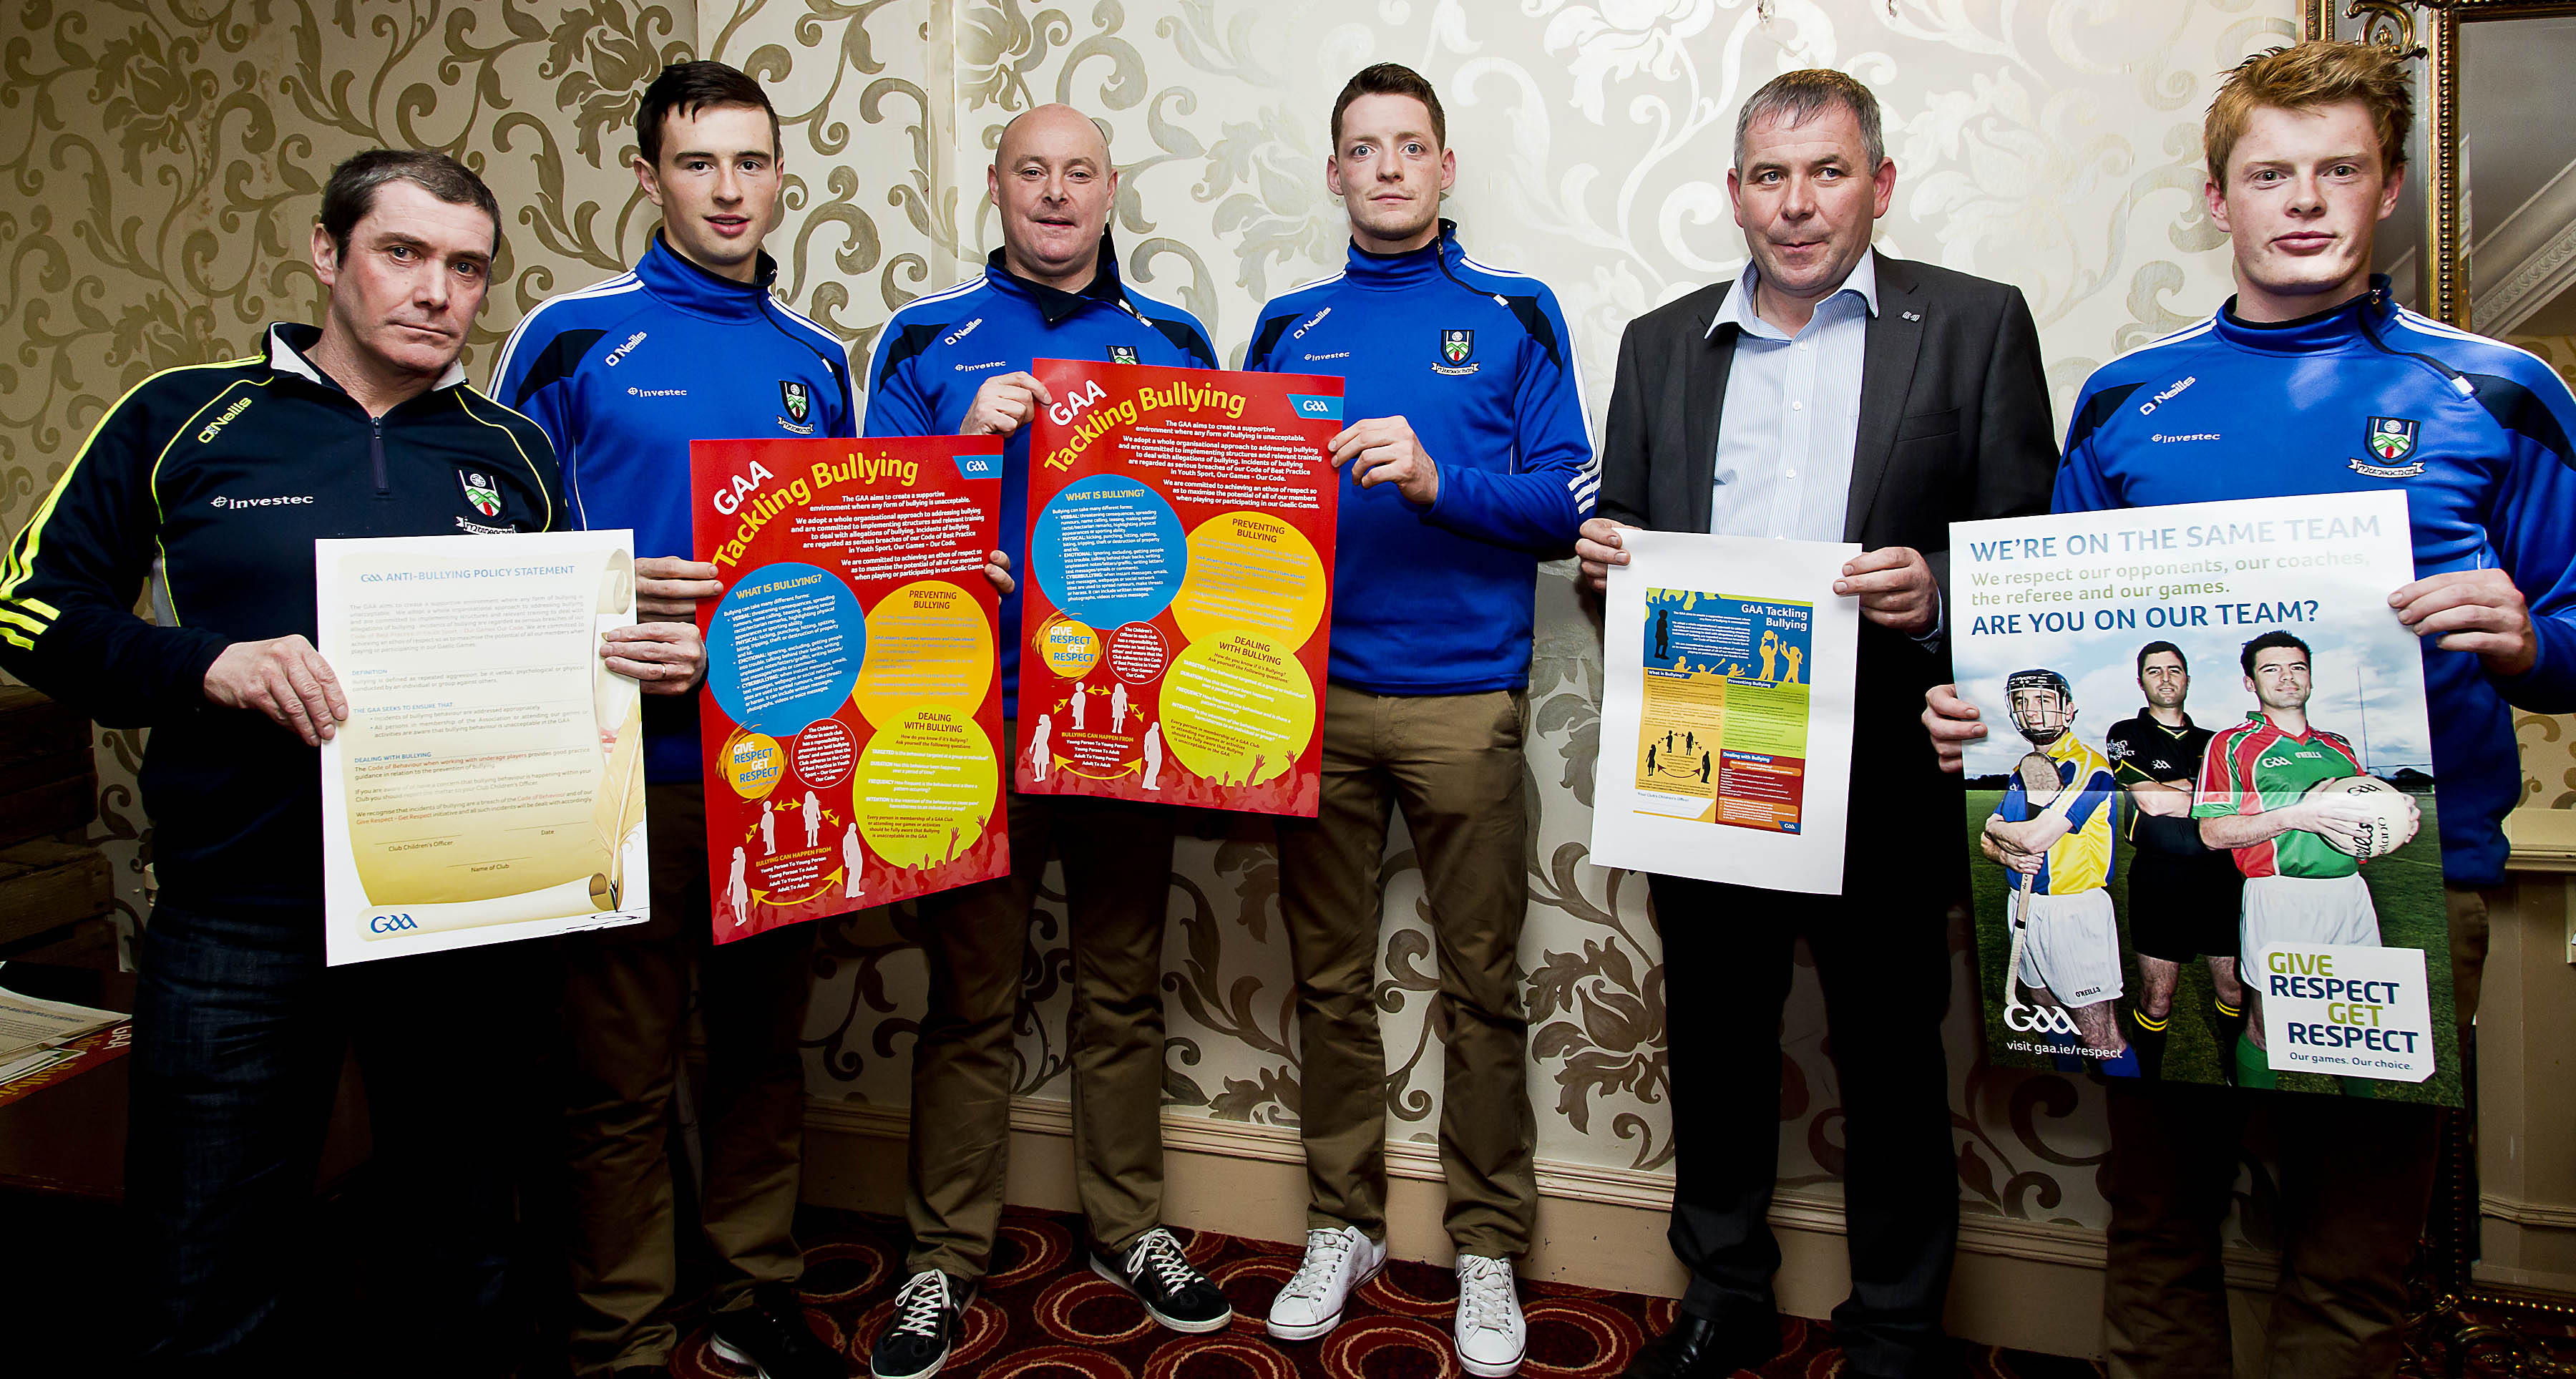 Ulster GAA support Anti-Bullying Week 2018